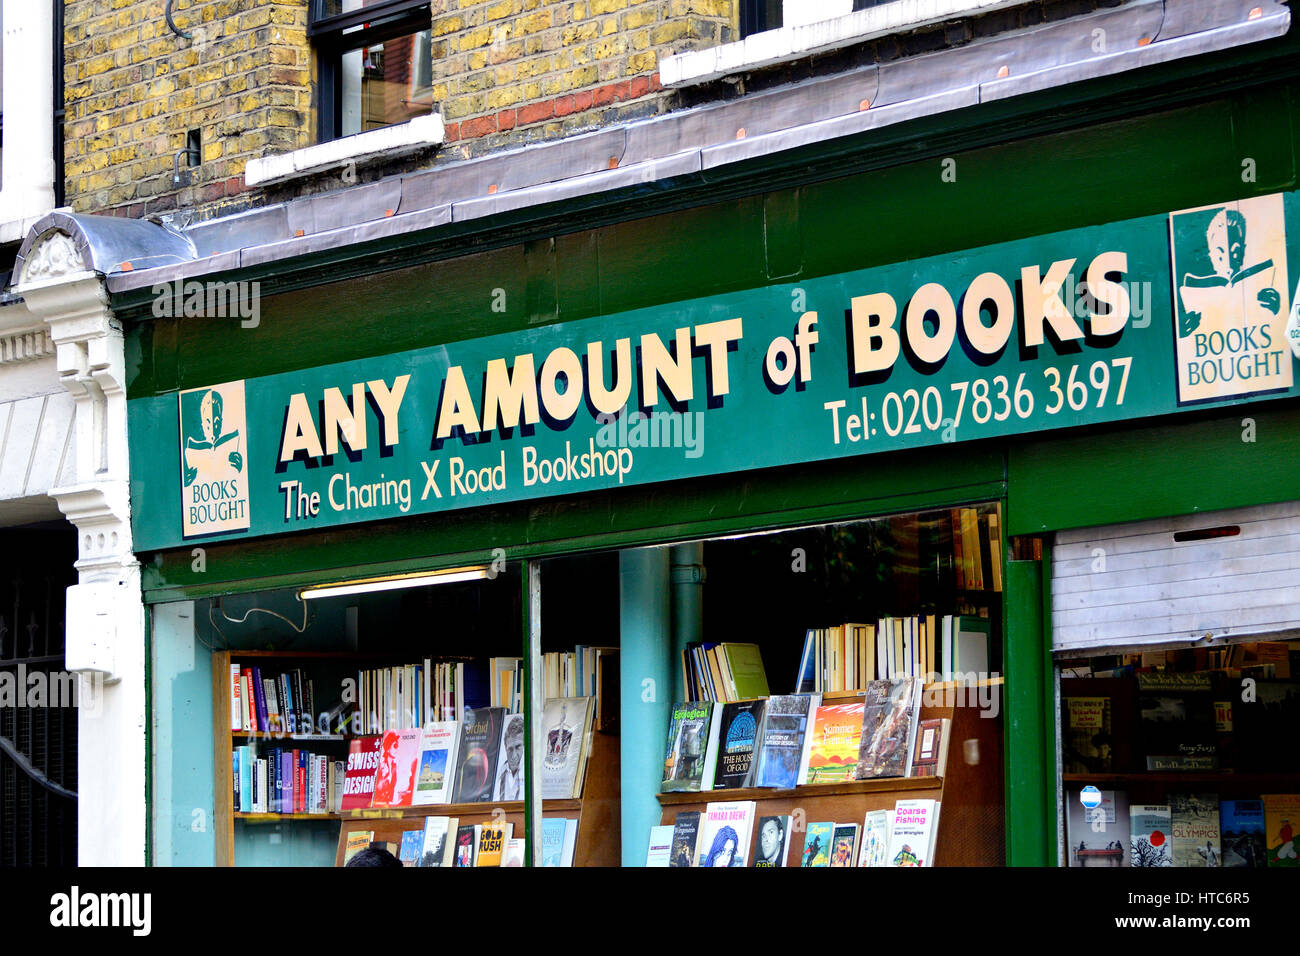 London England, UK. Any Amount of Books shop in Charing Cross Road (bad grammar - should be any 'number') - Stock Image